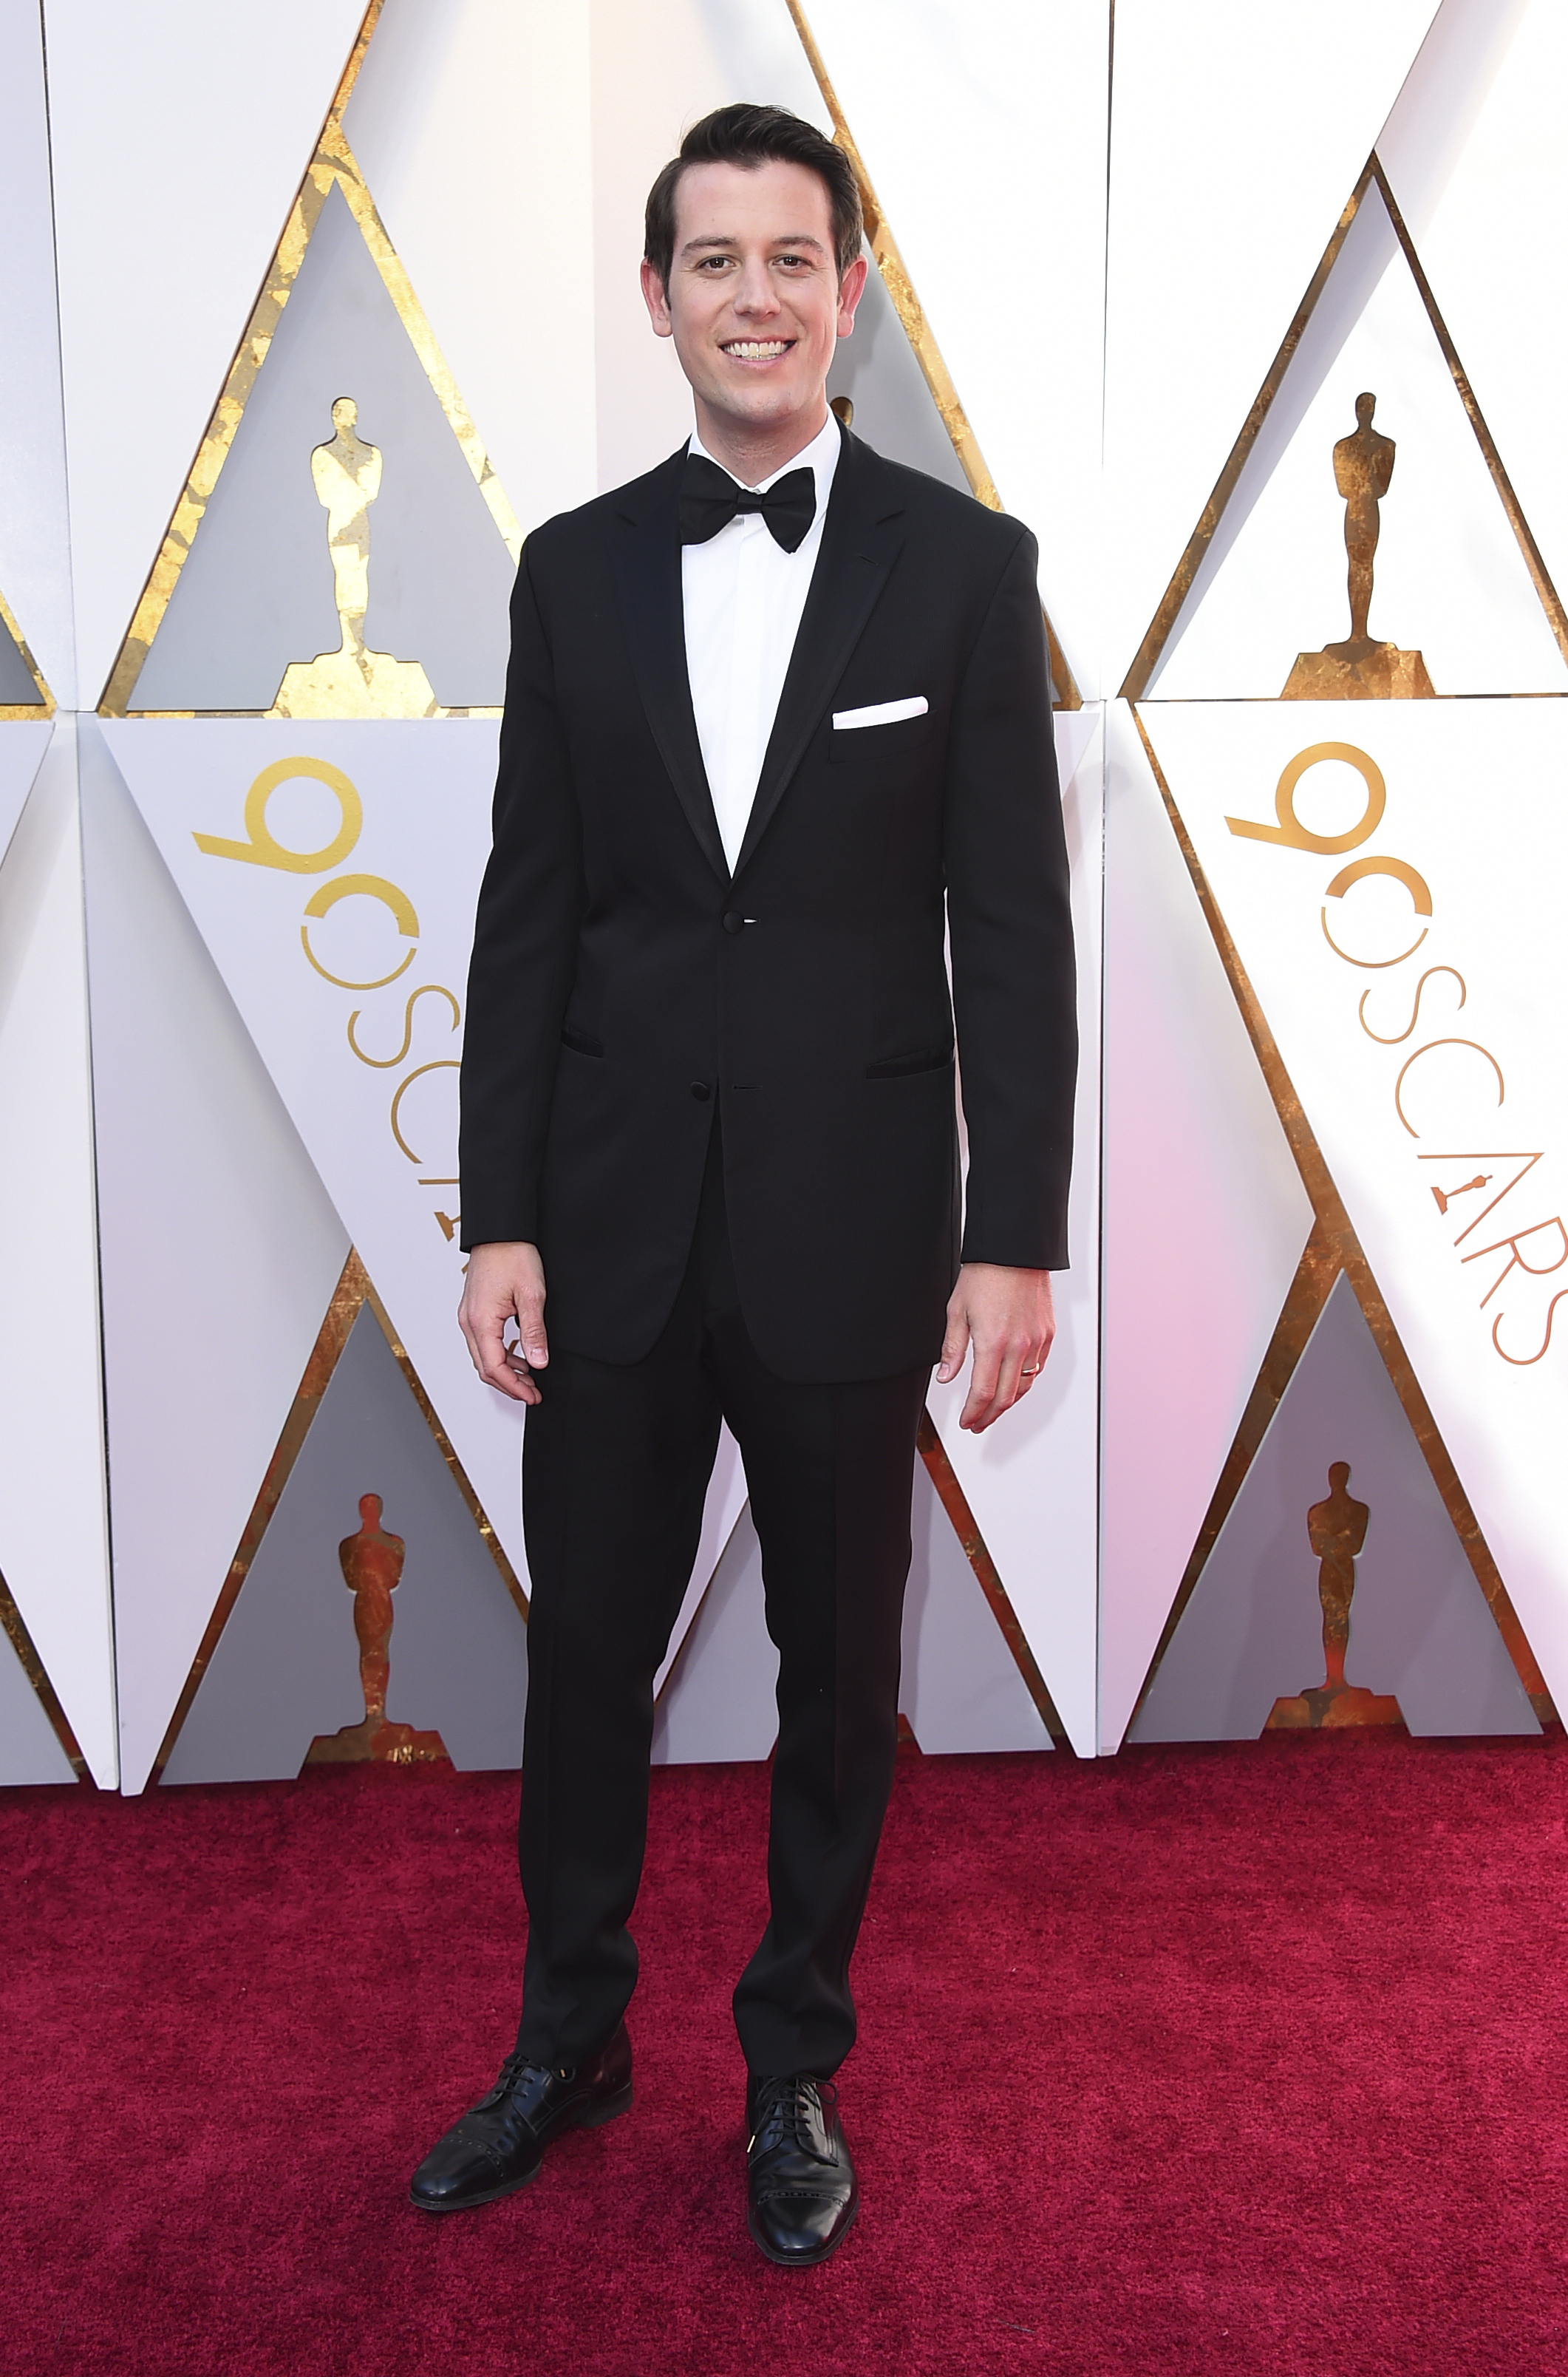 "<div class=""meta image-caption""><div class=""origin-logo origin-image none""><span>none</span></div><span class=""caption-text"">Ben Lyons arrives at the Oscars on Sunday, March 4, 2018, at the Dolby Theatre in Los Angeles. (Jordan Strauss/Invision/AP)</span></div>"